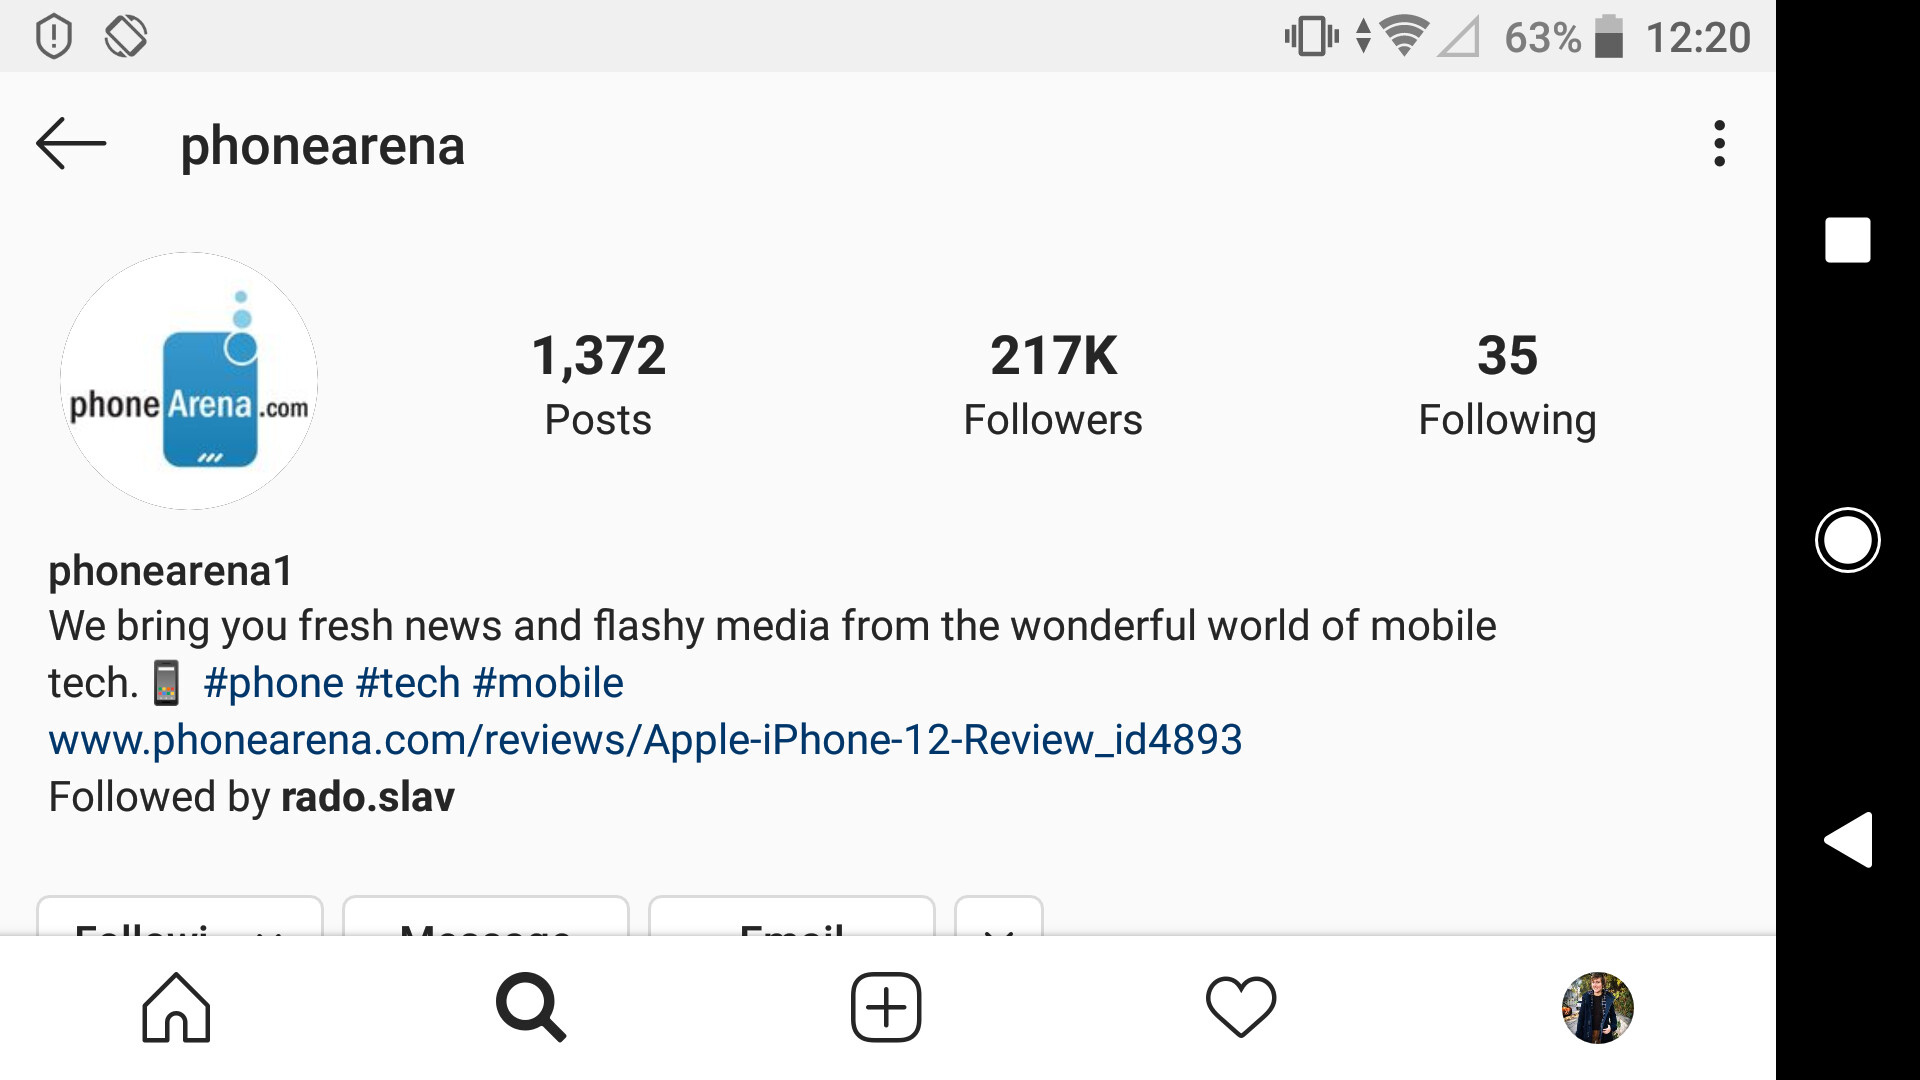 Instagram is now open in landscape mode - How to force landscape or portrait mode in apps like Instagram and others (Android)